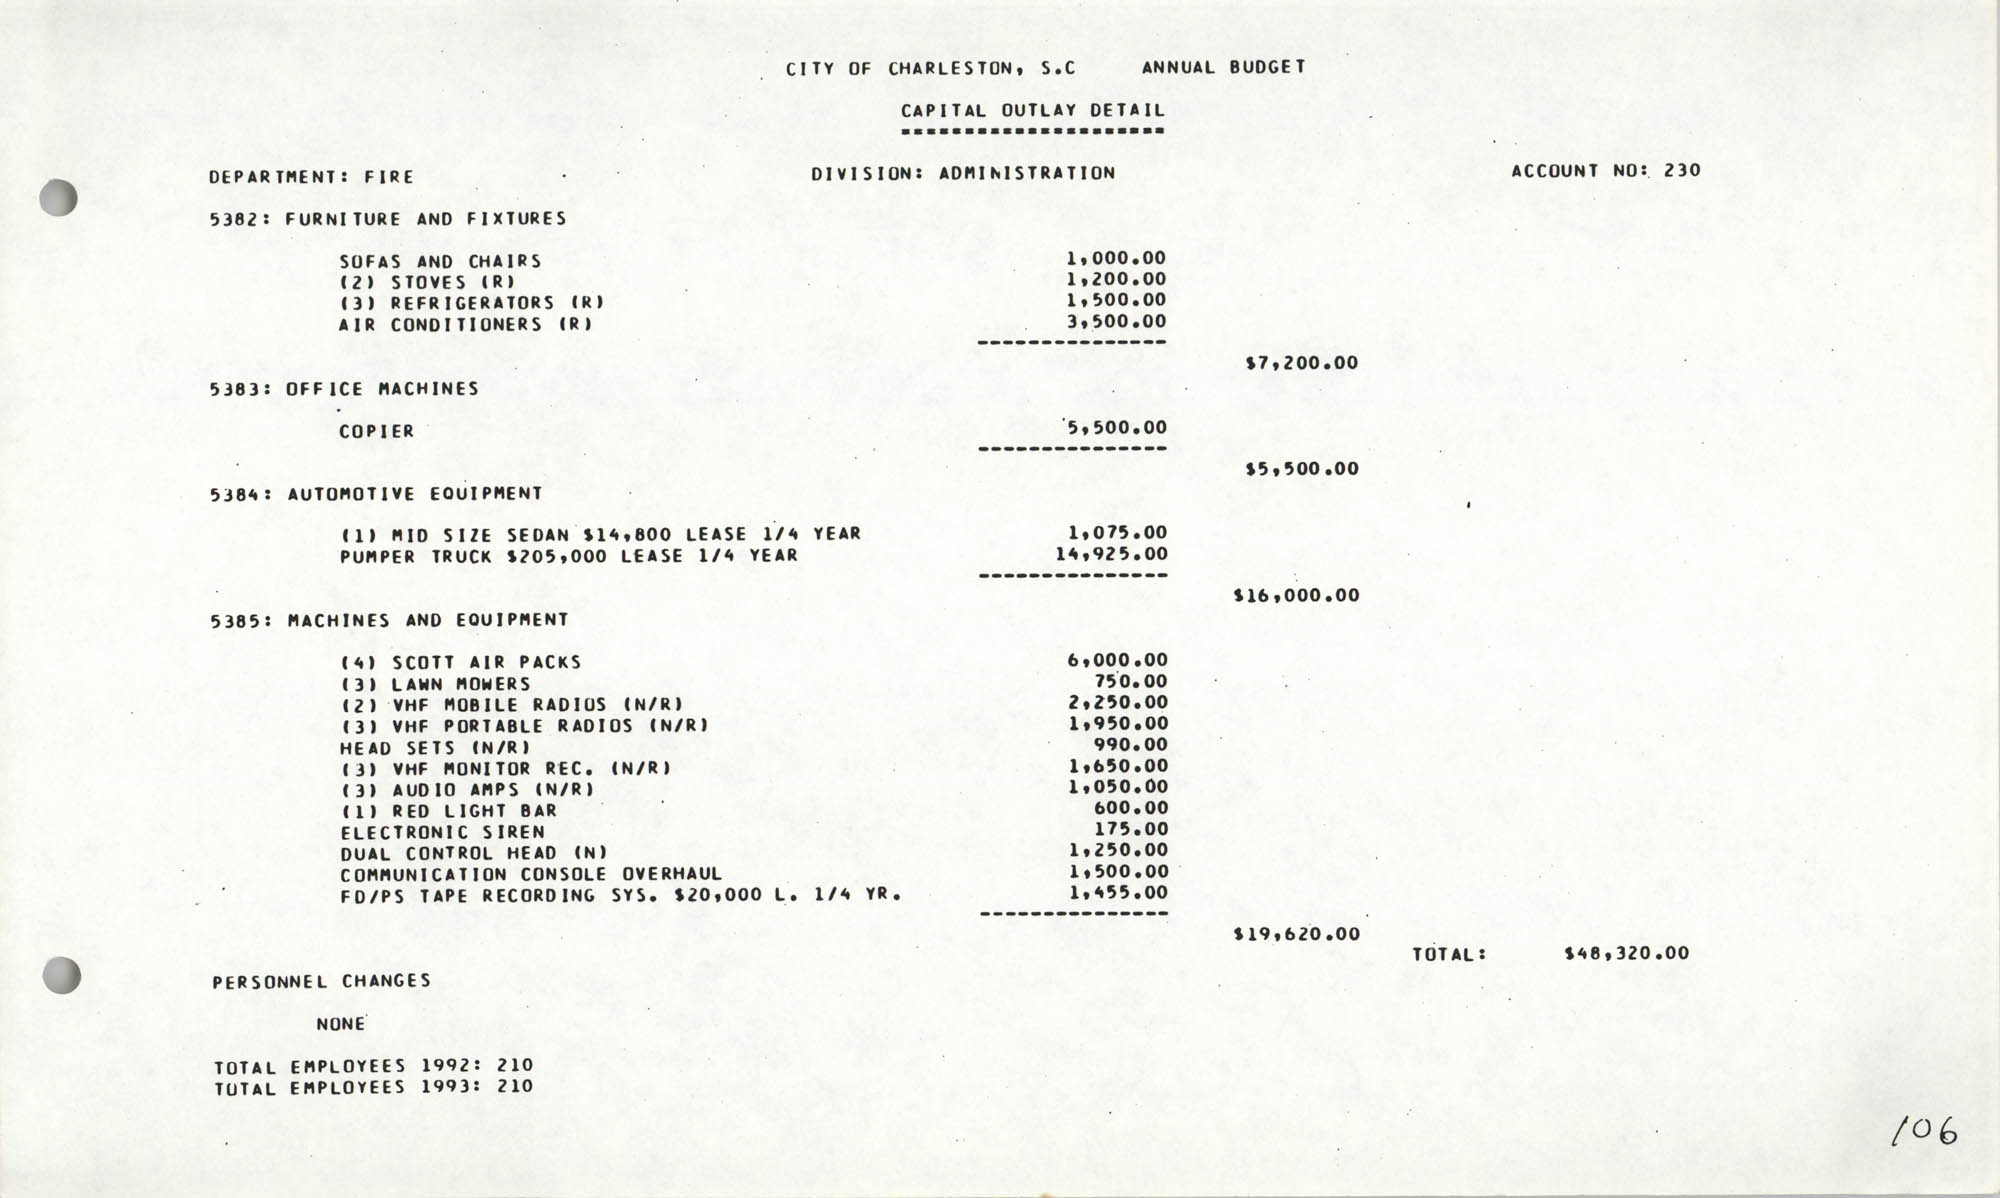 The City Council of Charleston, South Carolina, 1993 Budget, Page 106